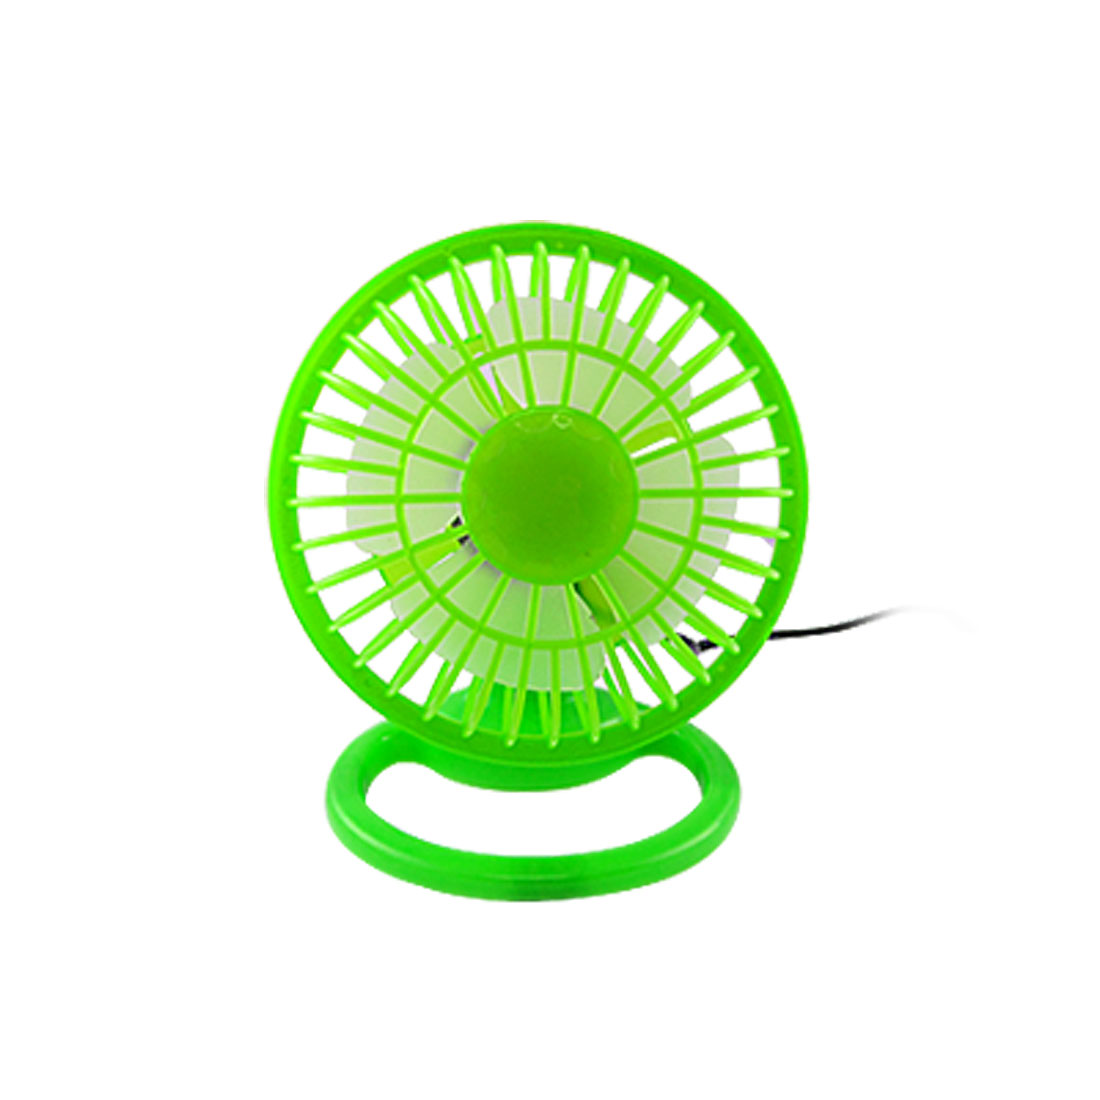 ON/OFF Plastic 4 Angle Adjustable Green Mini USB Desk Fan